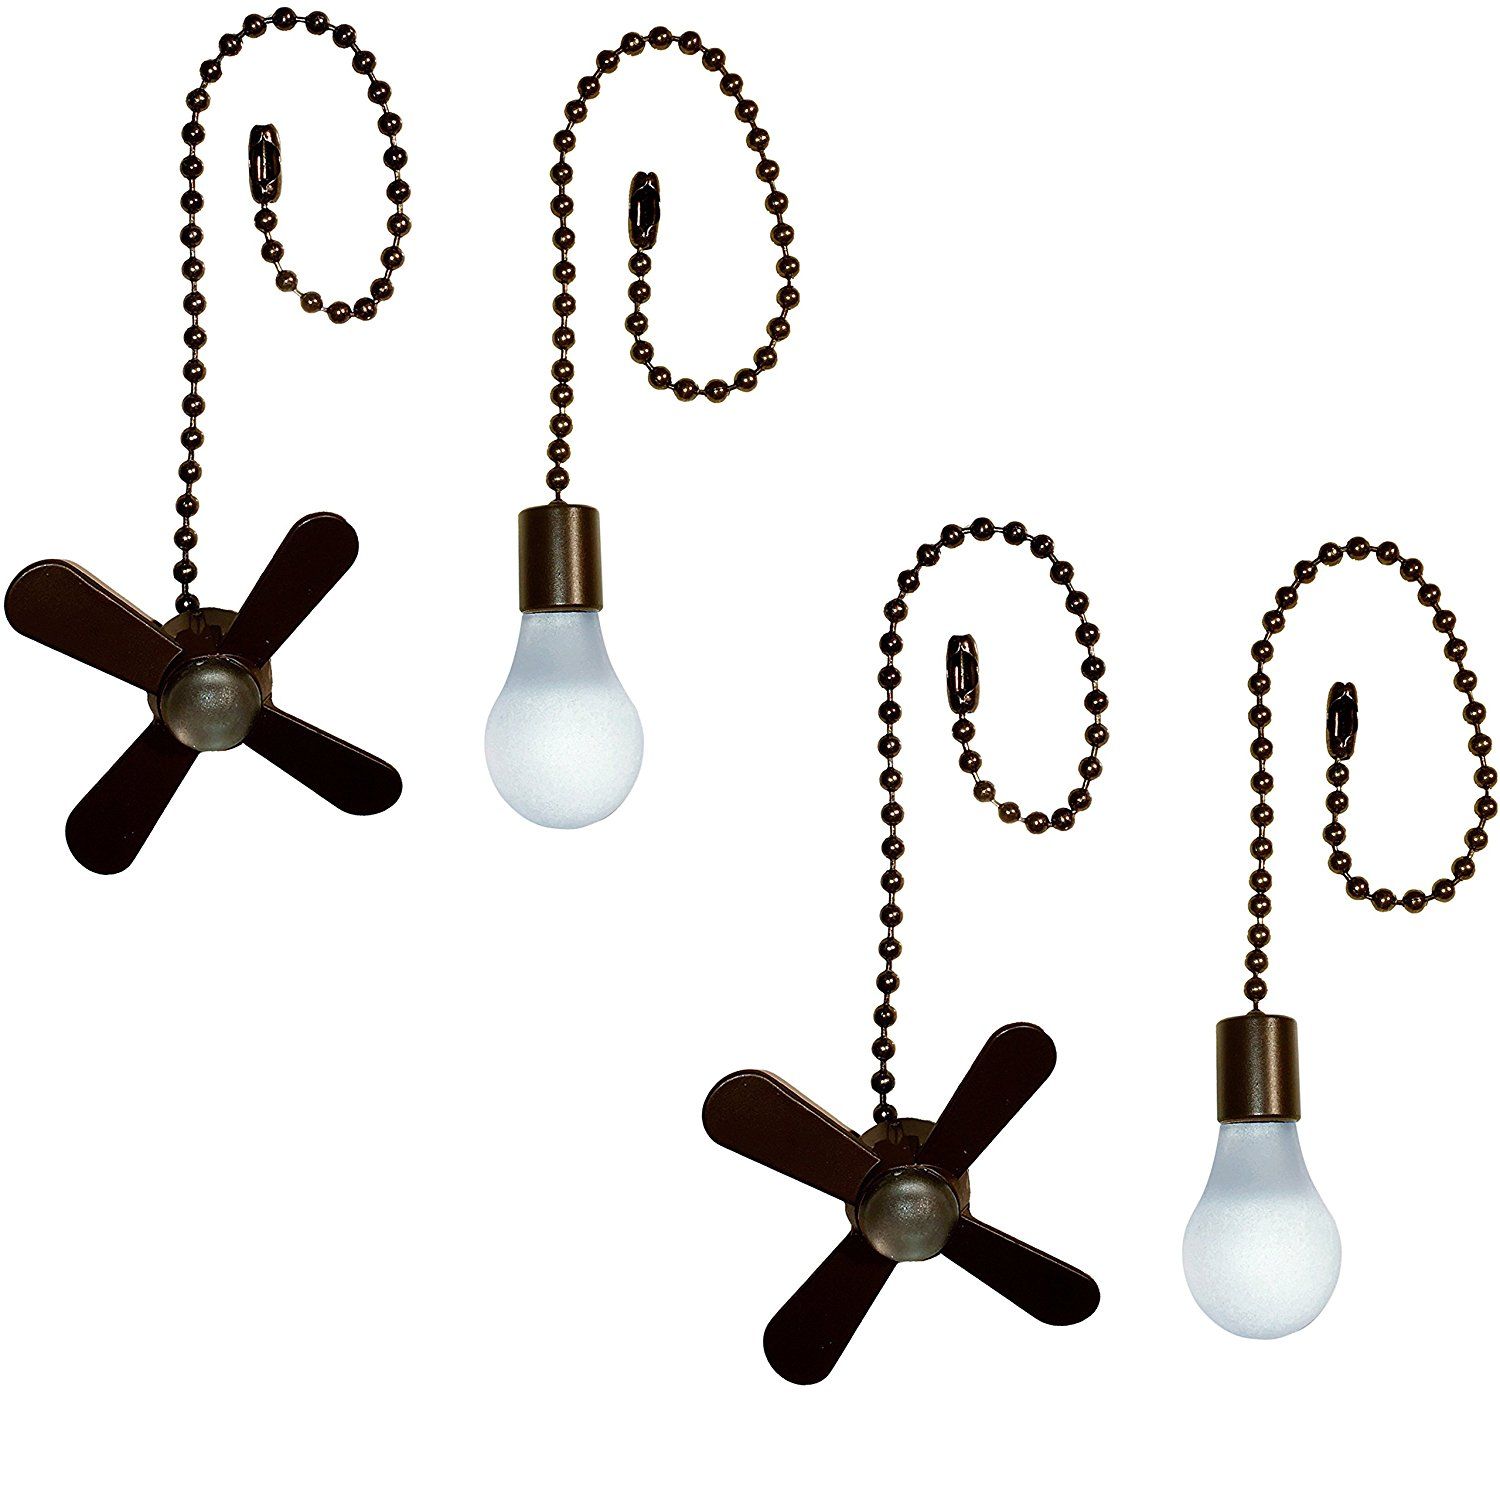 Ceiling Fan Pull Chain (2 Pack, Bronze) By Harbor Breeze